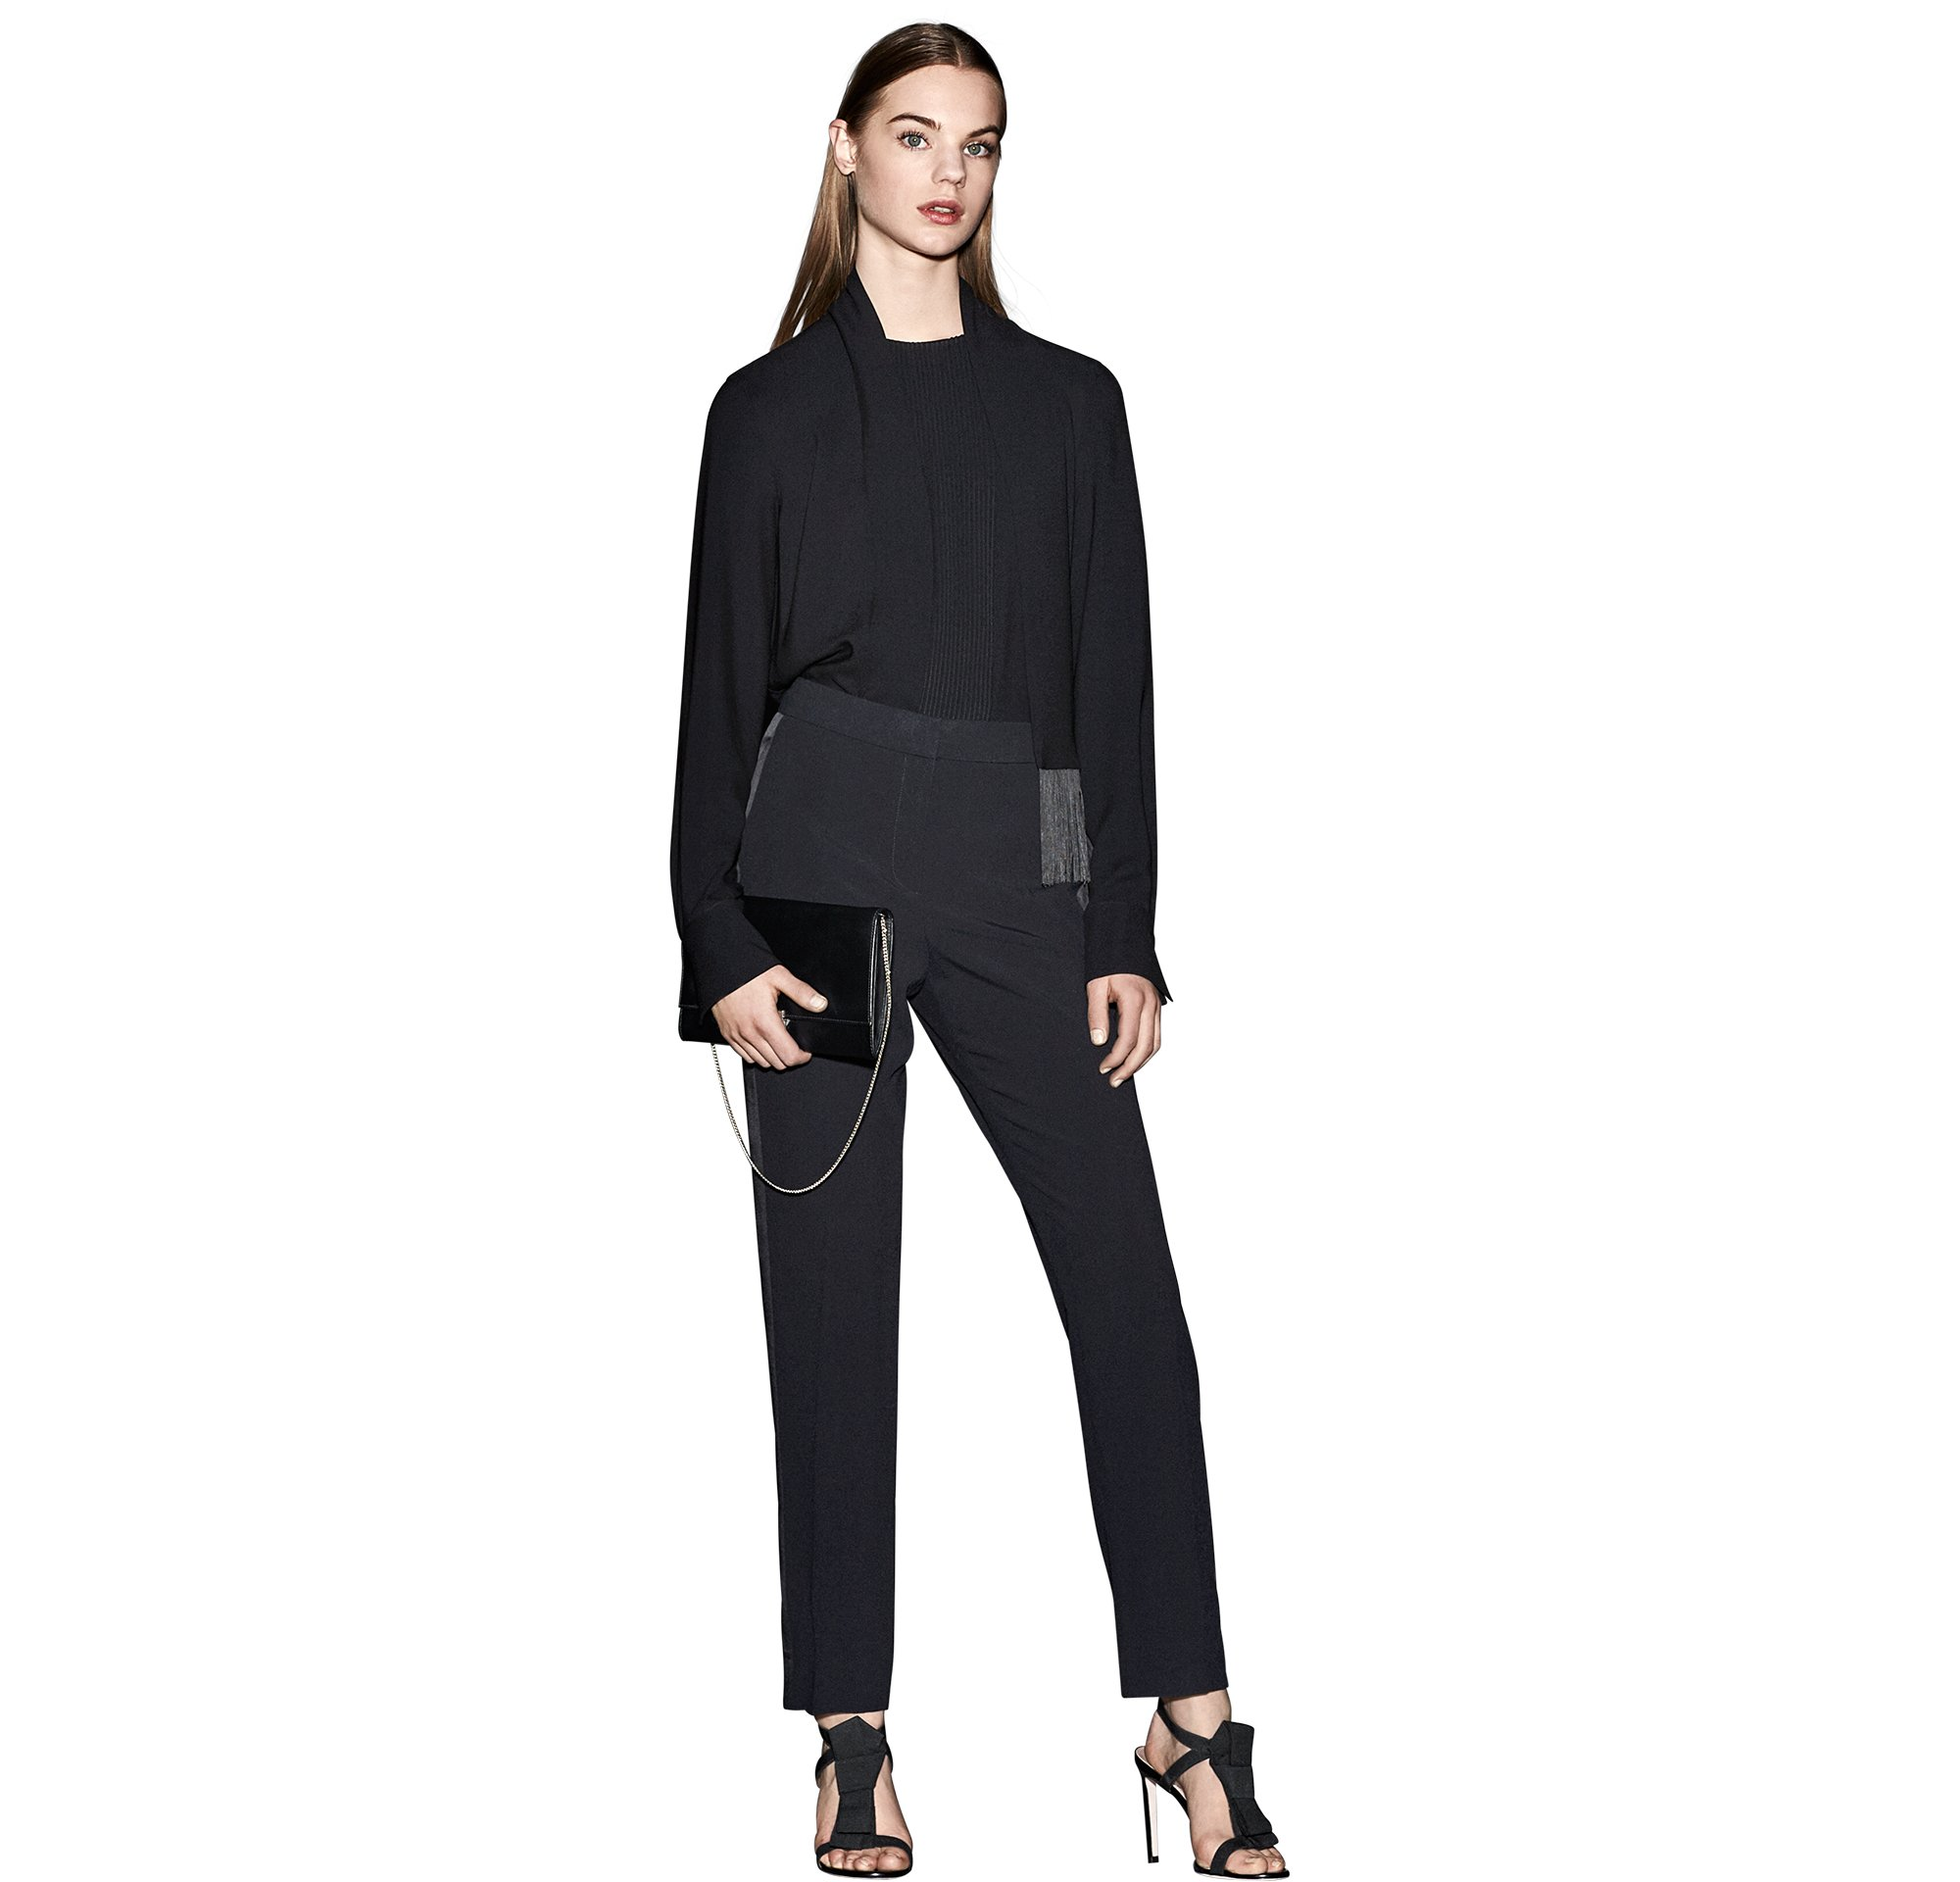 Black blouse over black trousers with a black bag and black shoes by BOSS